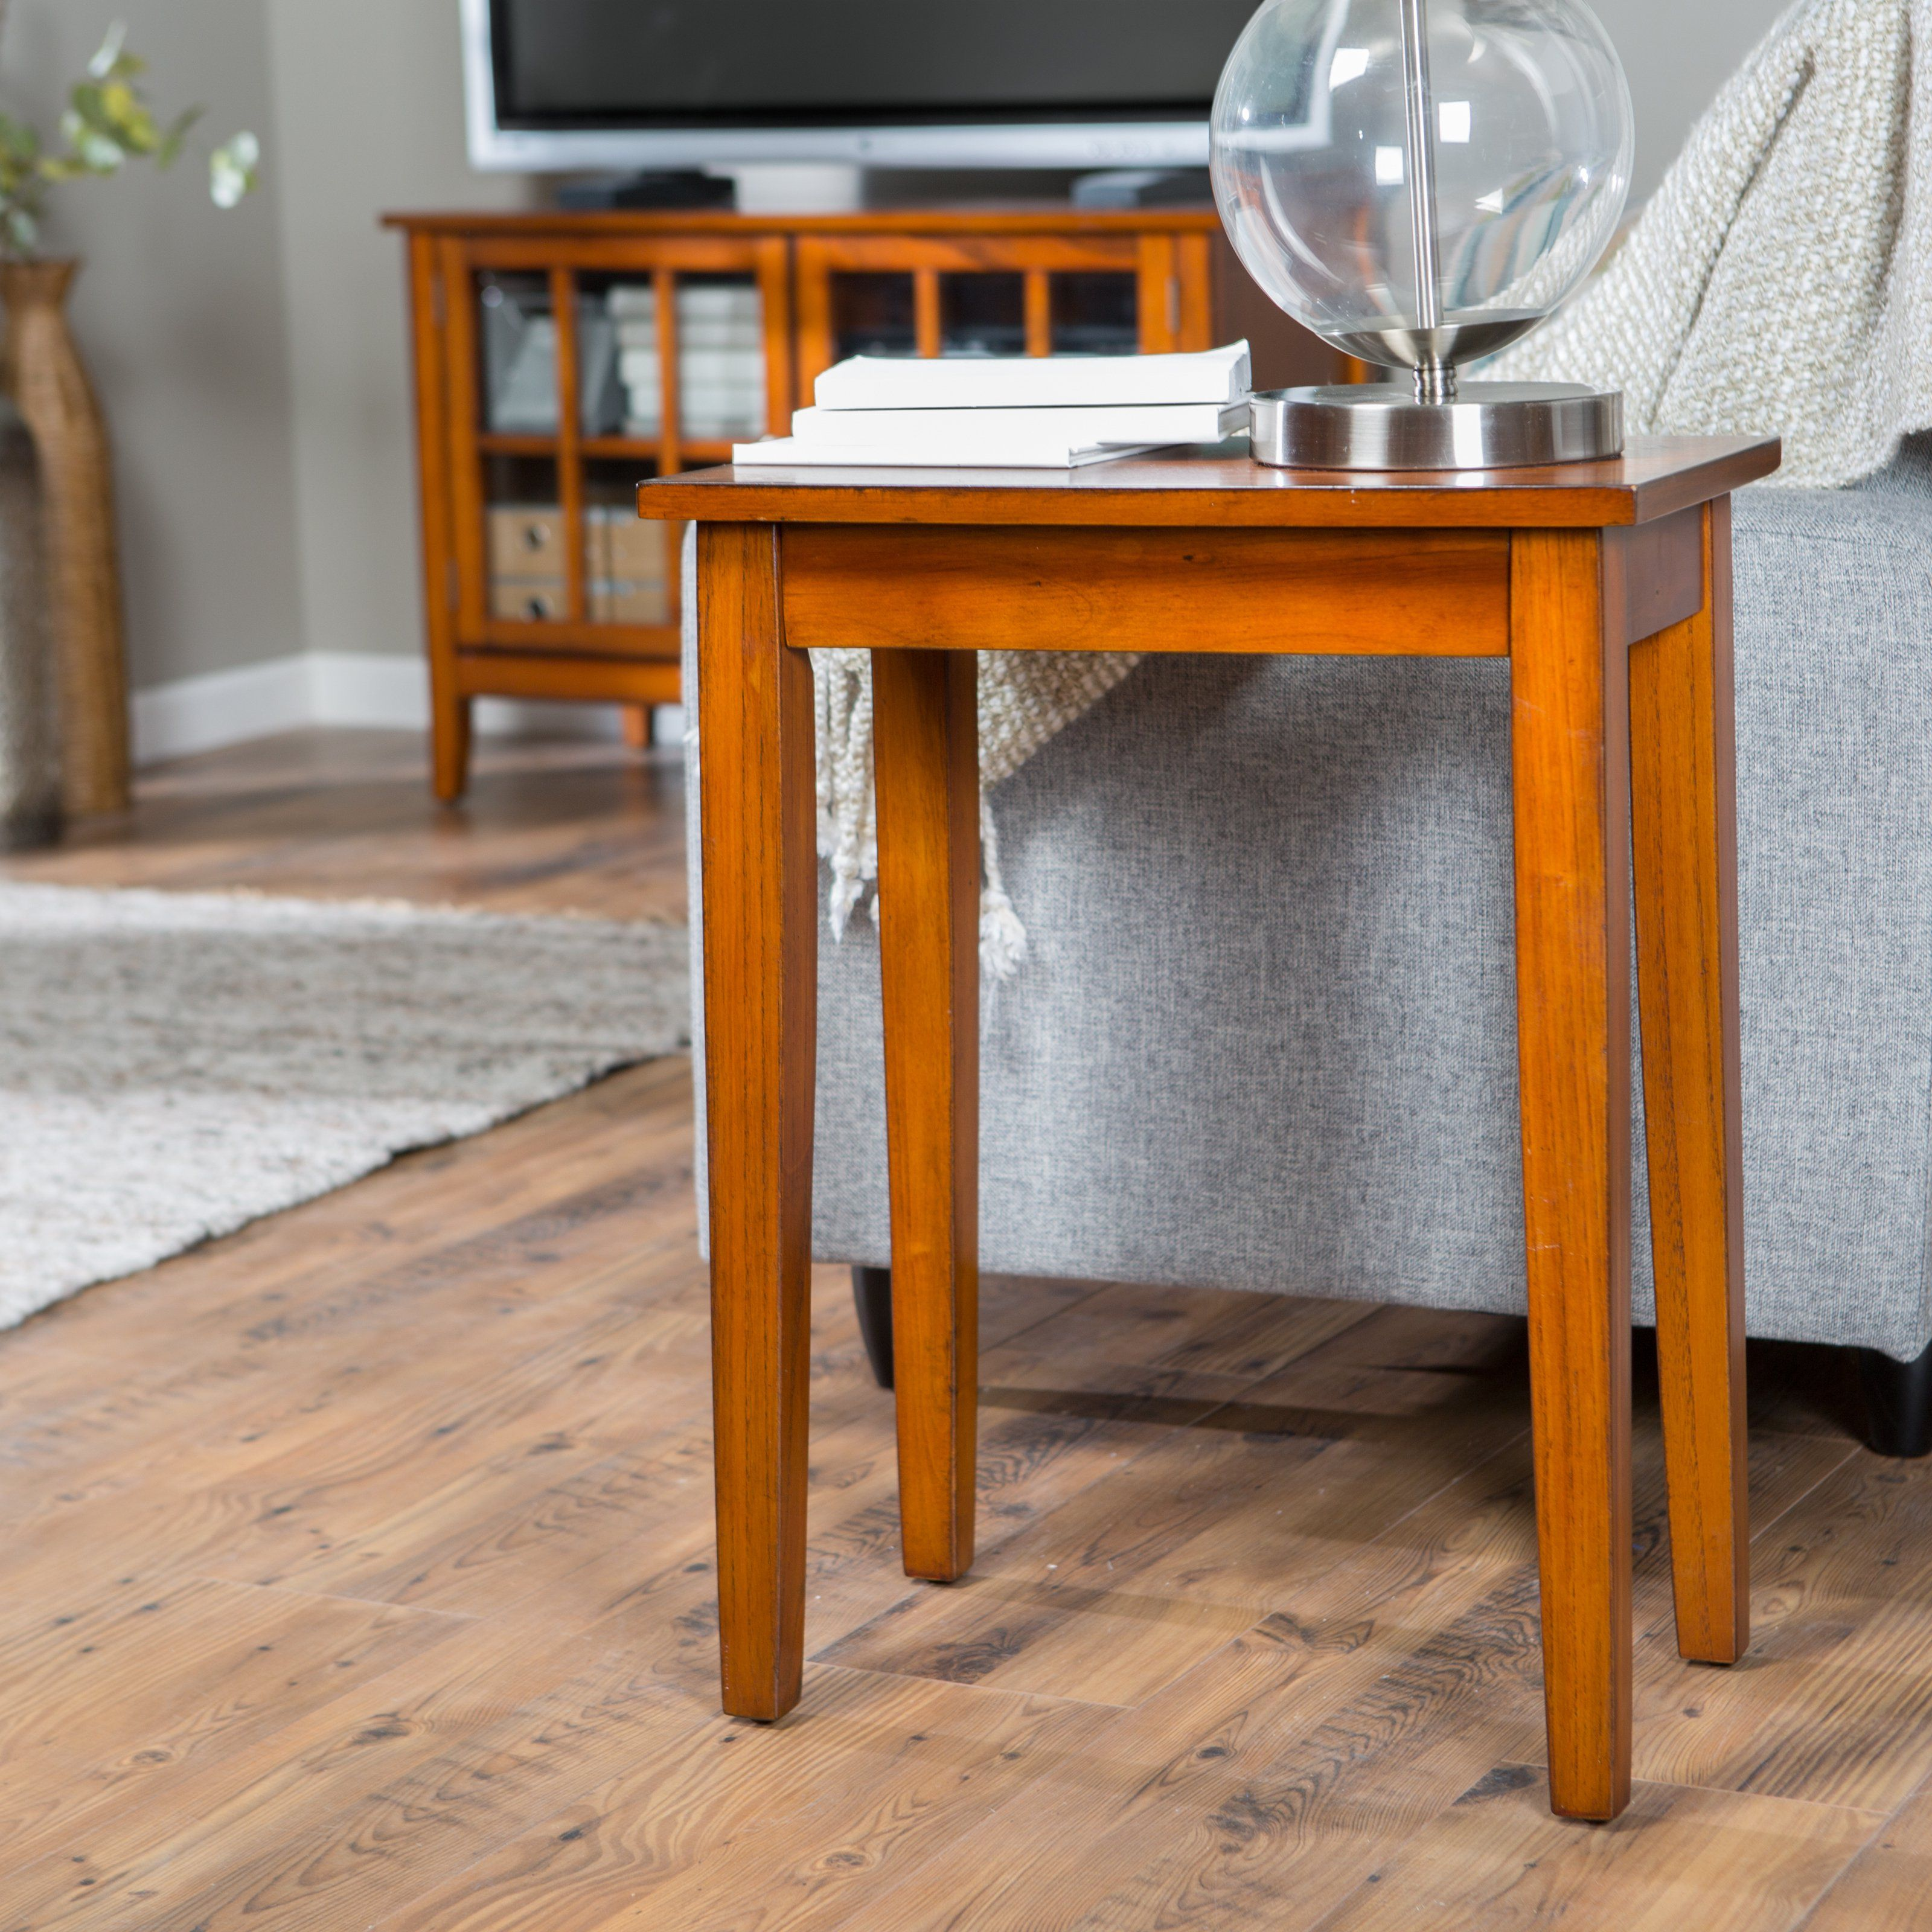 Light Colored Side Tables   Teak Wood Tables Complement Homes Of Several  Sizes And Function In A Variety Of Ways. The Most Remarkable Quality Of  Teak Table